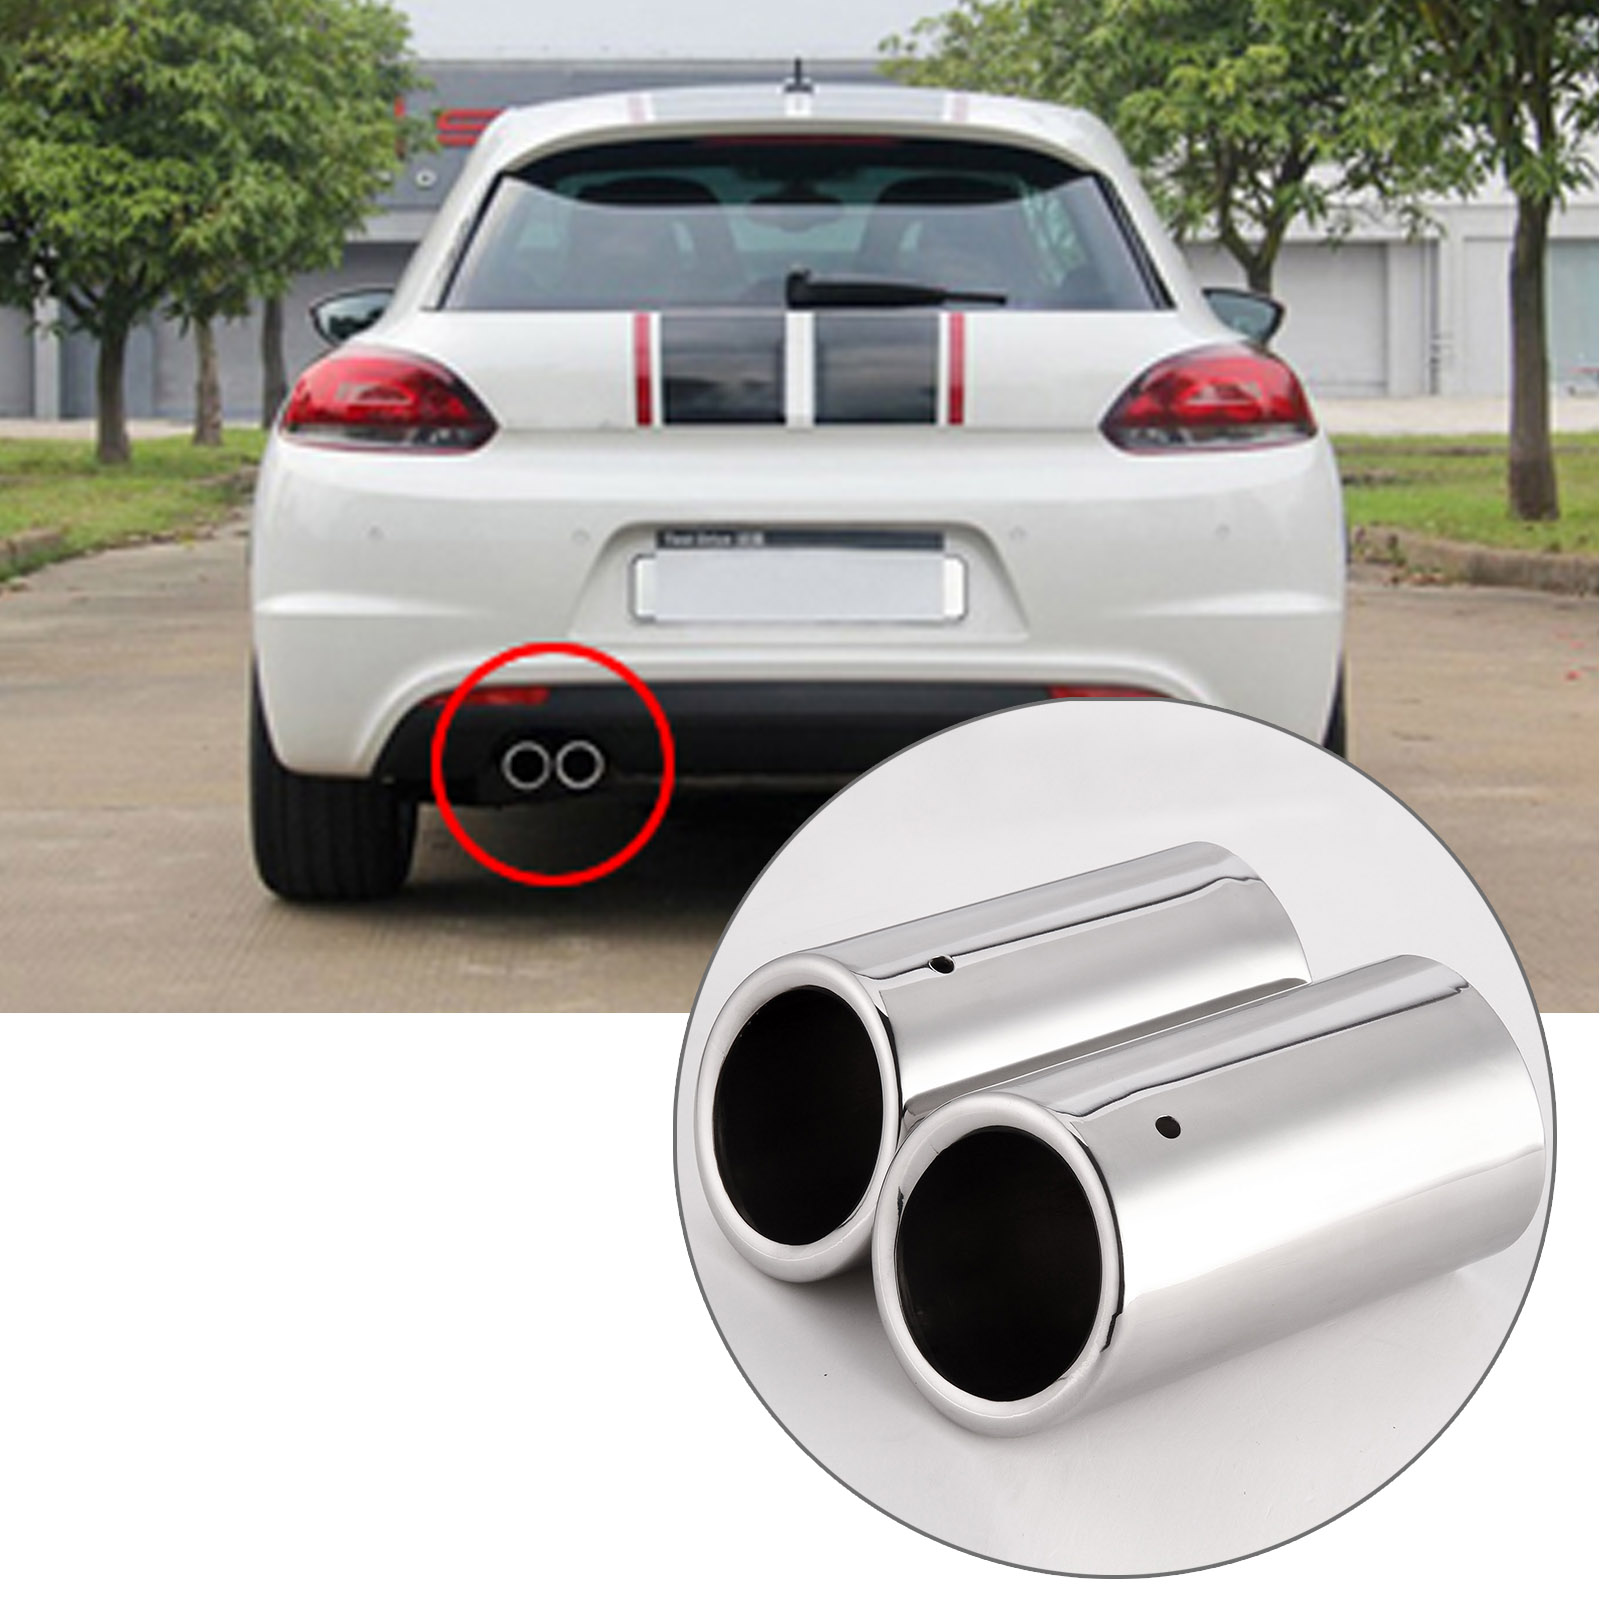 stainless steel exhaust tips pipe tail for vw golf mk6 mk7. Black Bedroom Furniture Sets. Home Design Ideas